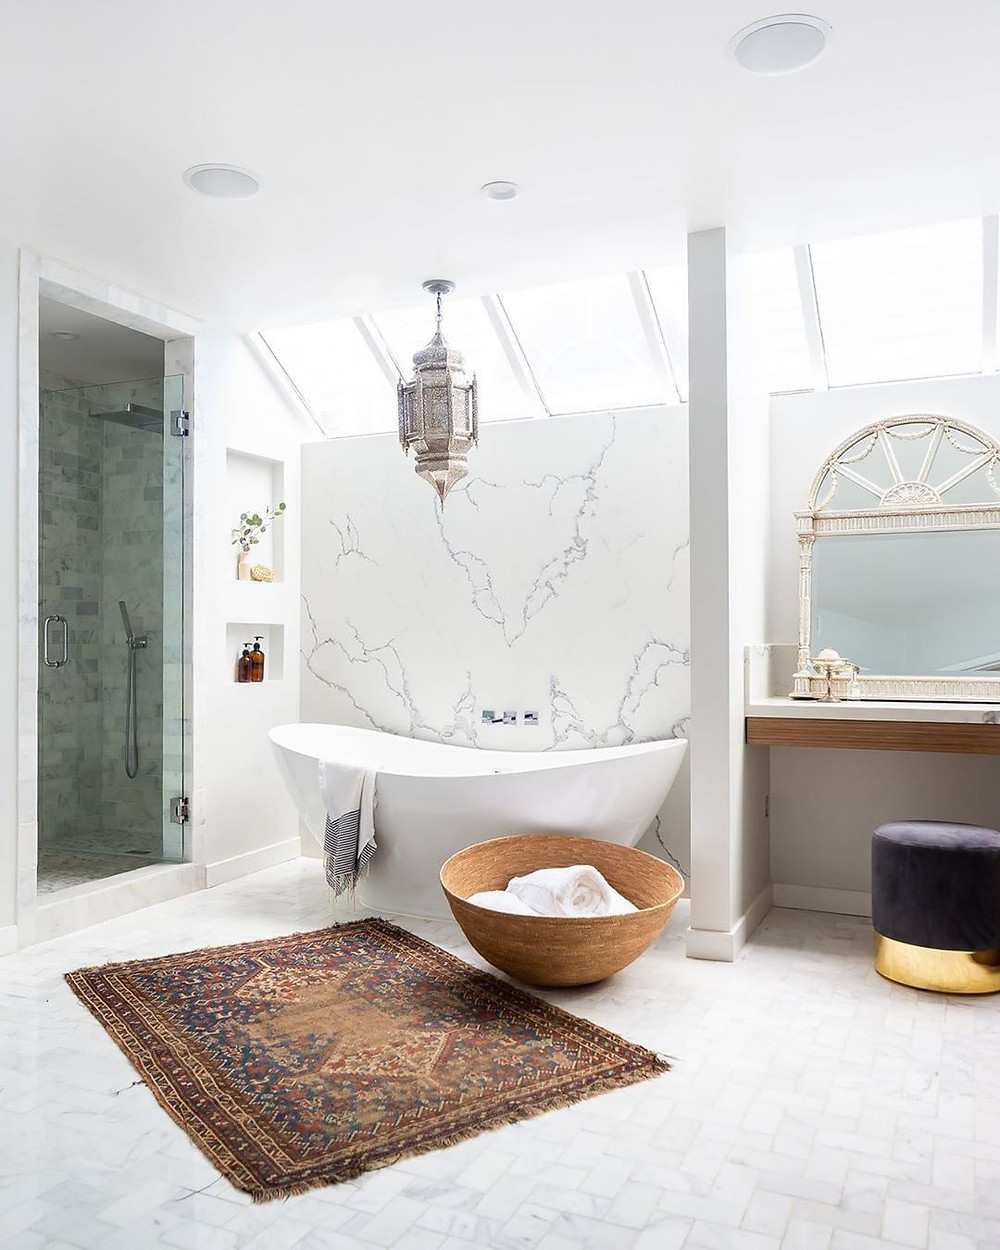 luxury bathroom and bathtub design with open white flooring and marble walls